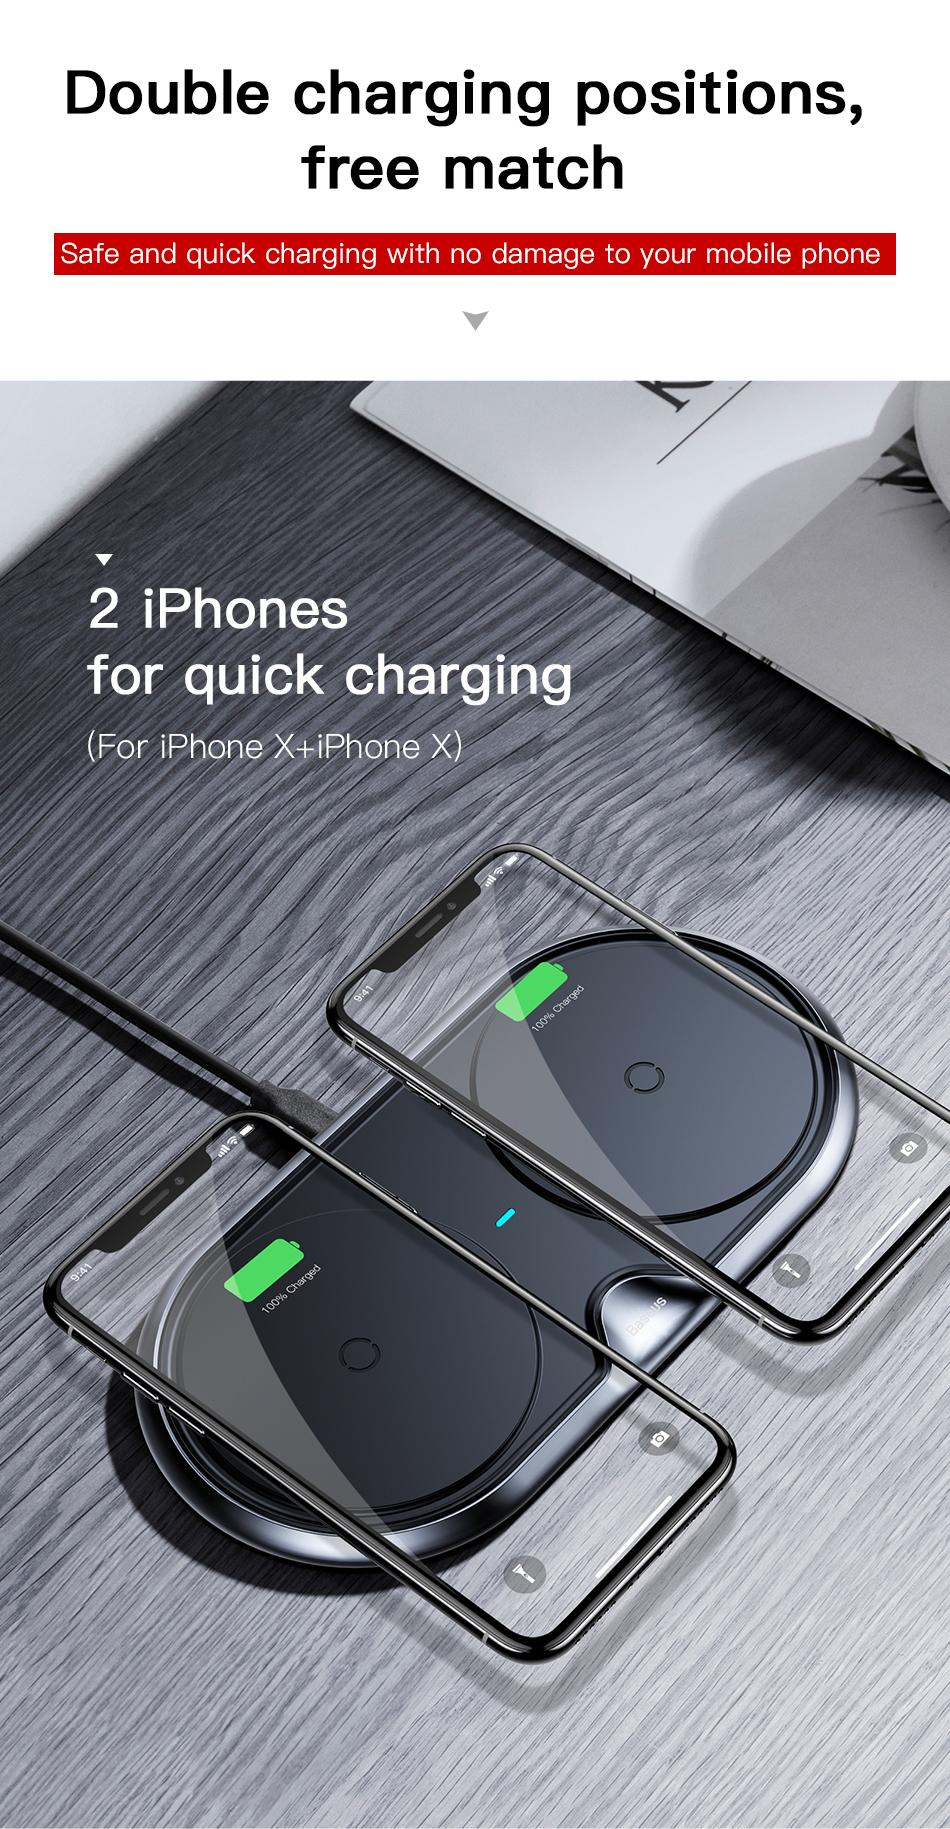 Wireless Charger of Baseus Dual For iPhone X XS Max Xr Samsung S9 S8 Note 8 9 10W Fast Wireless Charging Pad Dock Station Desktop 5